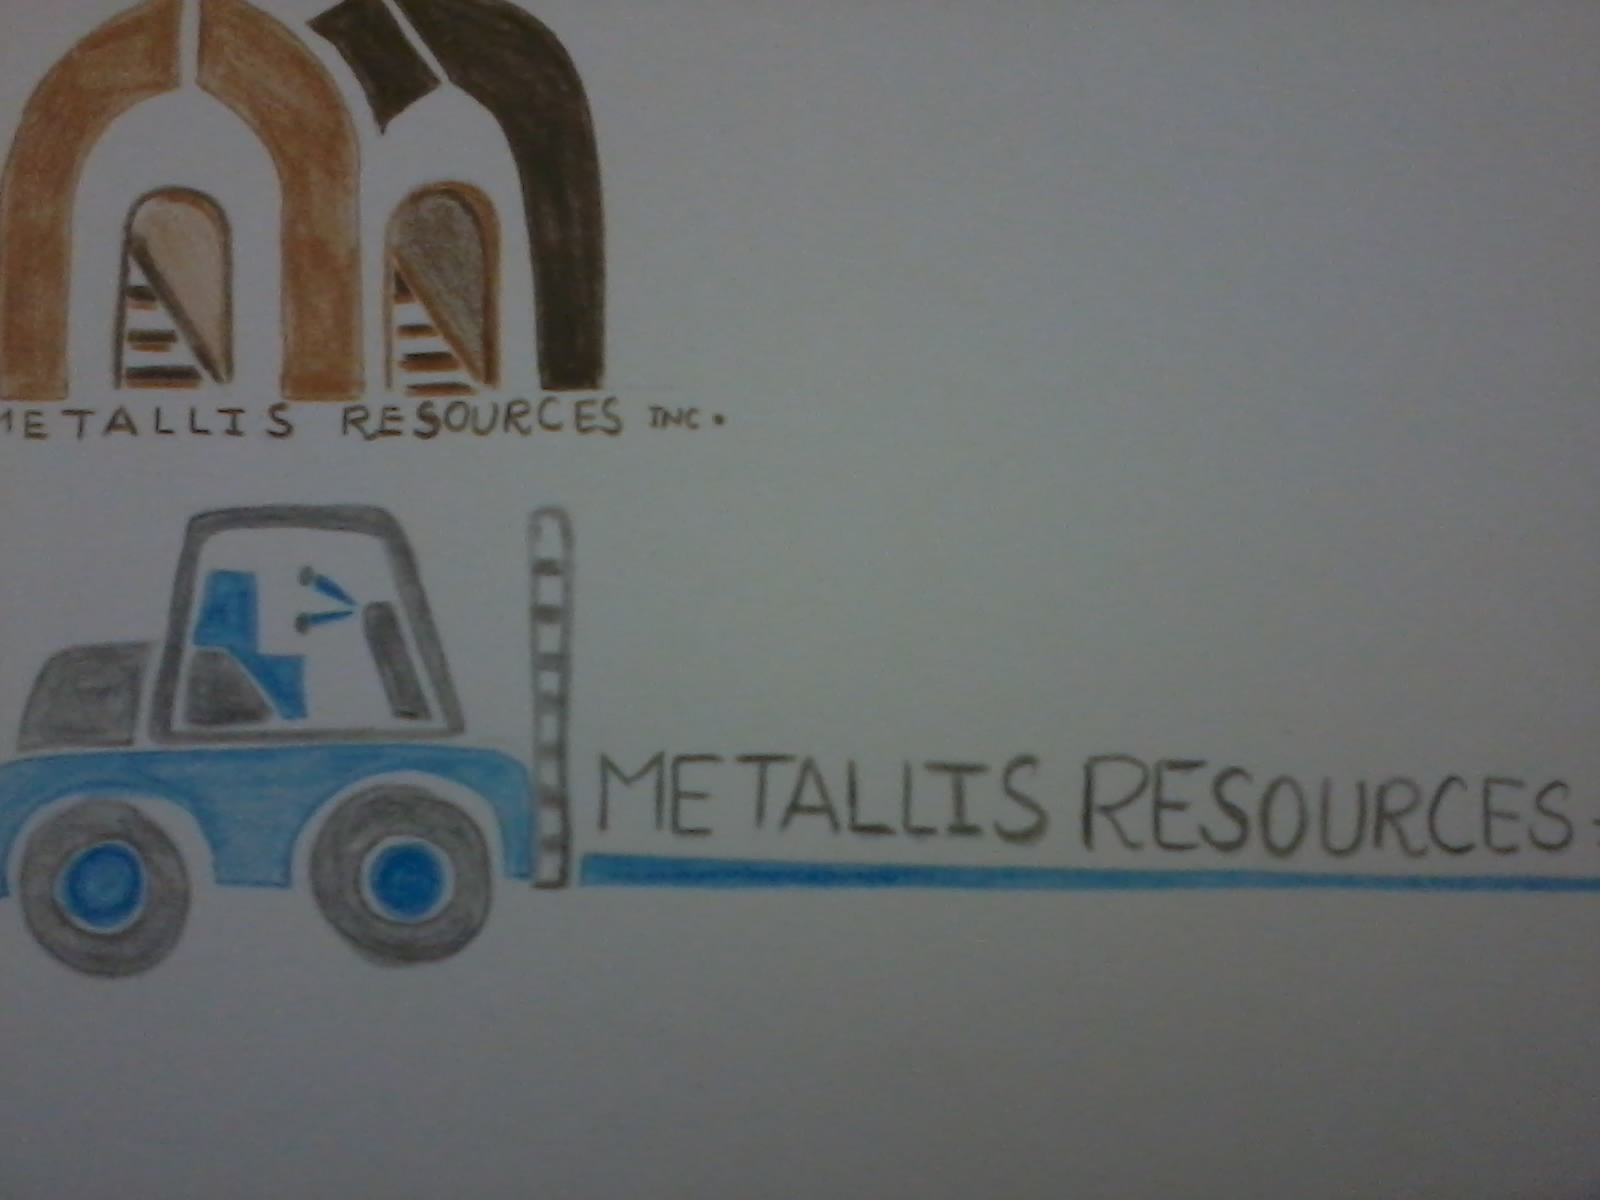 Logo Design by mediaproductionart - Entry No. 37 in the Logo Design Contest Metallis Resources Inc Logo Design.